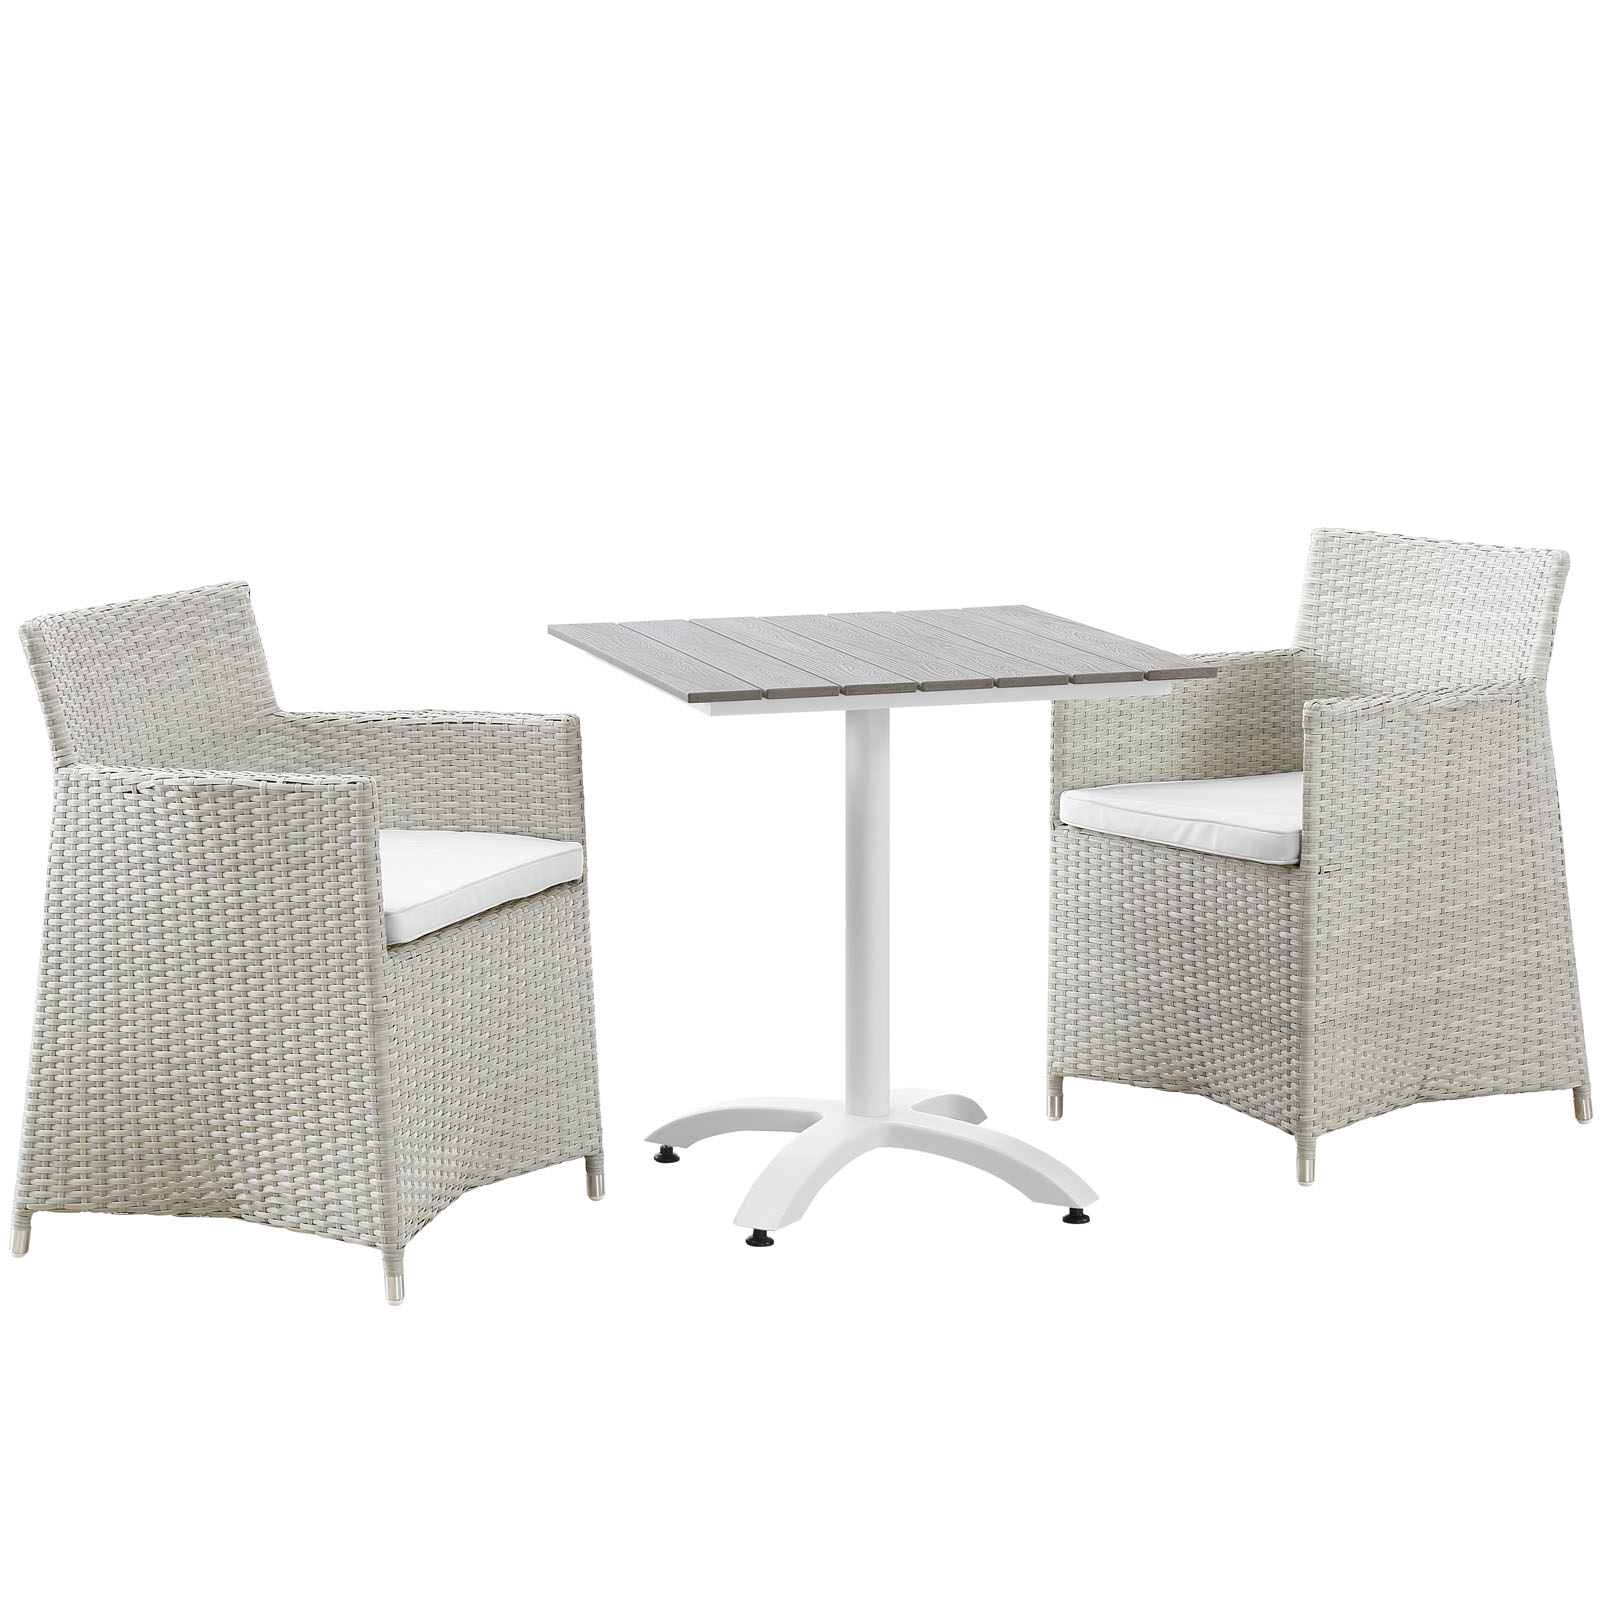 Modern Urban Contemporary 3 pcs Outdoor Patio Dining Room Set, Gray White Plastic by